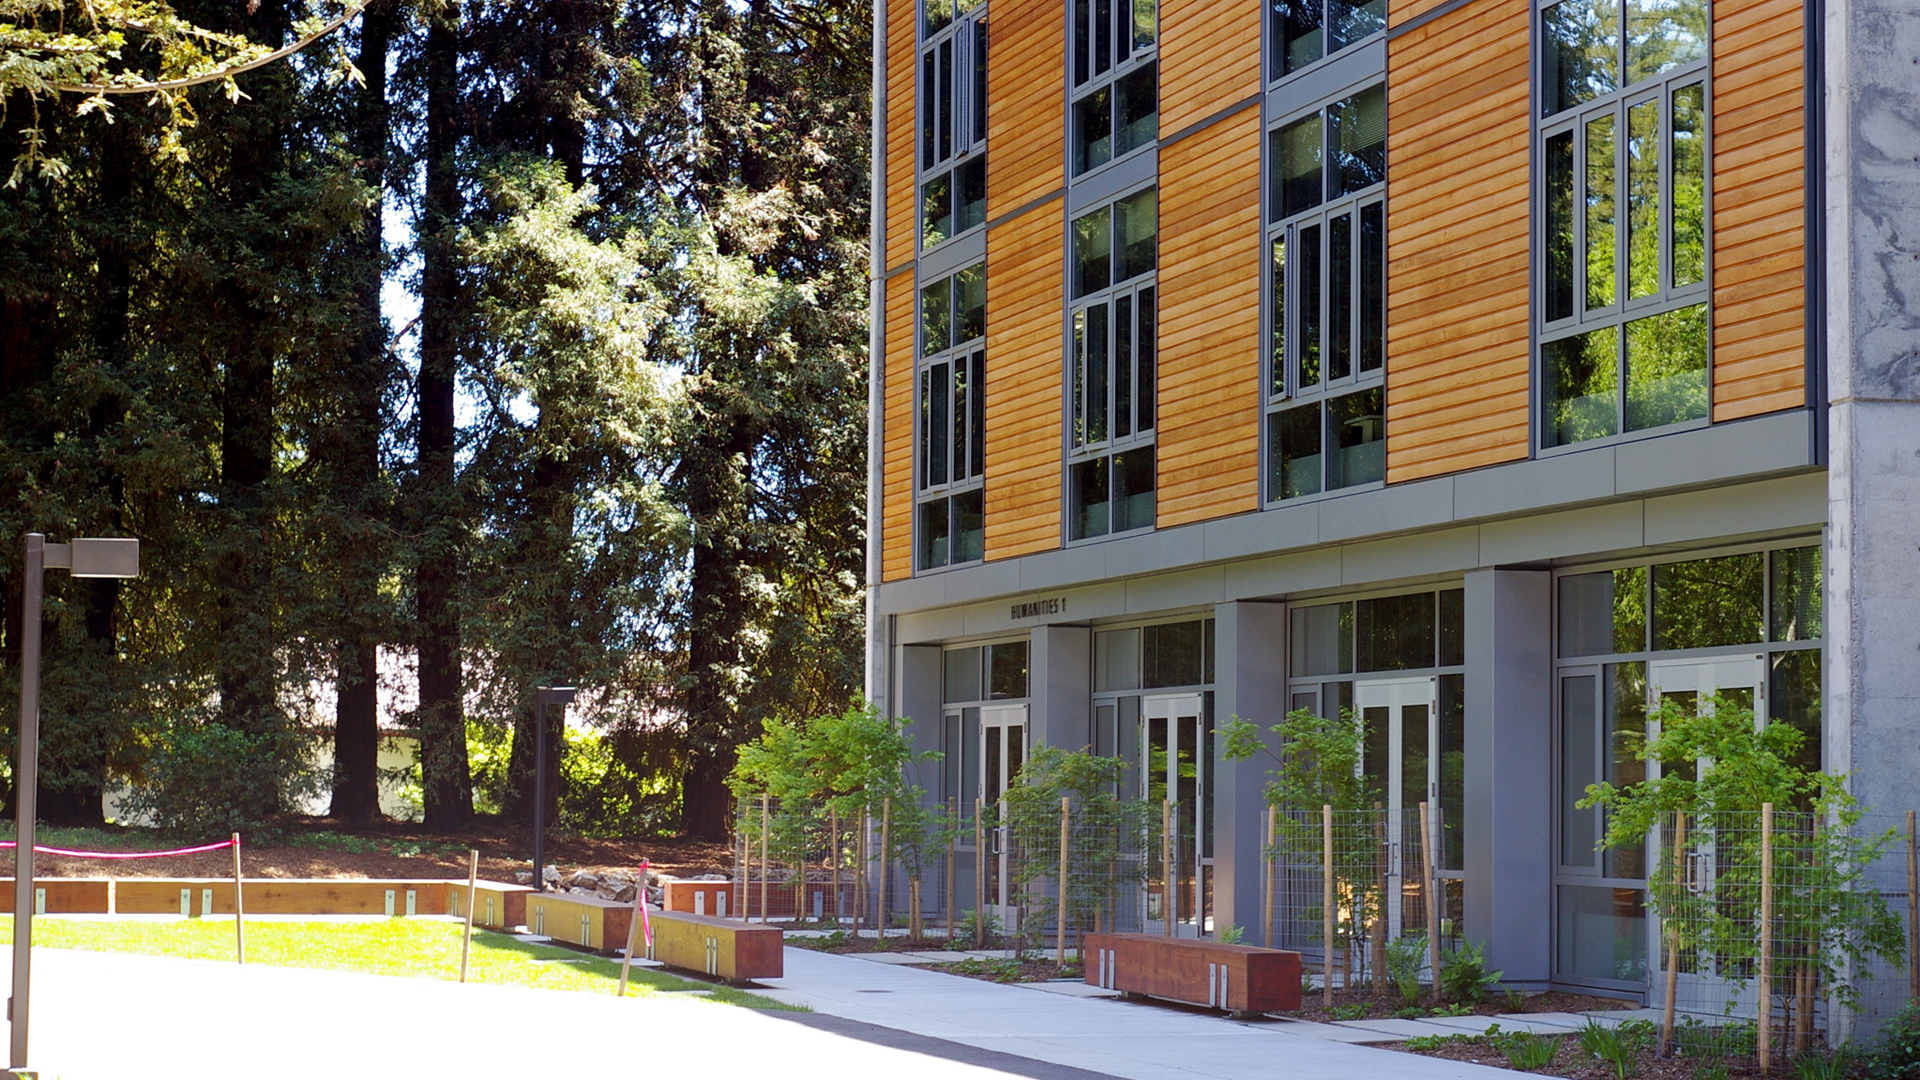 A humanities building on the UC Santa Cruz campus is seen in April 2007. (Credit: Casey Marshall / Wikimedia Commons)